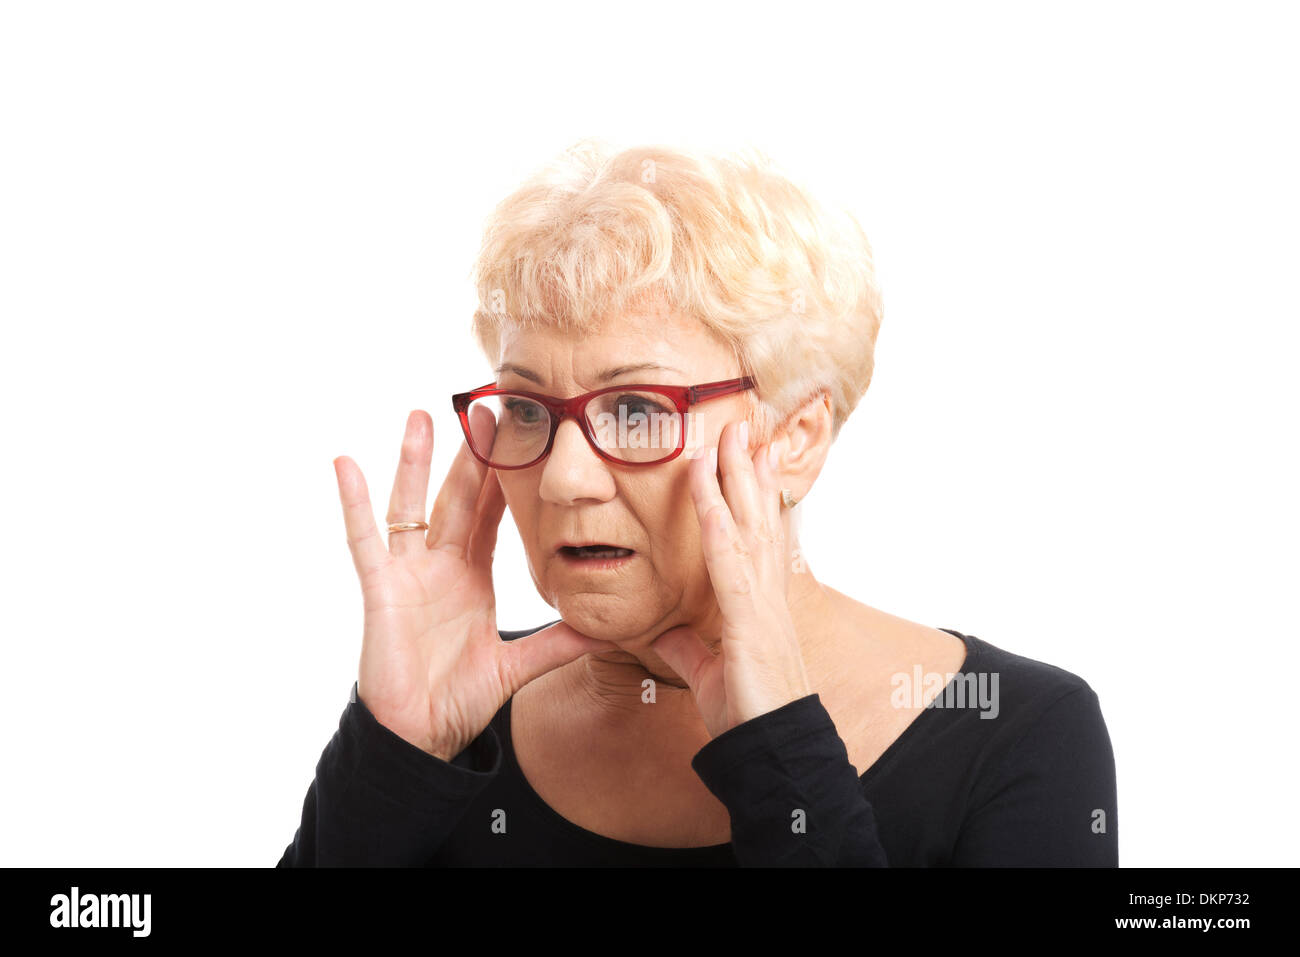 An old lady expresses shock/ surprise. Isolated on white.  - Stock Image